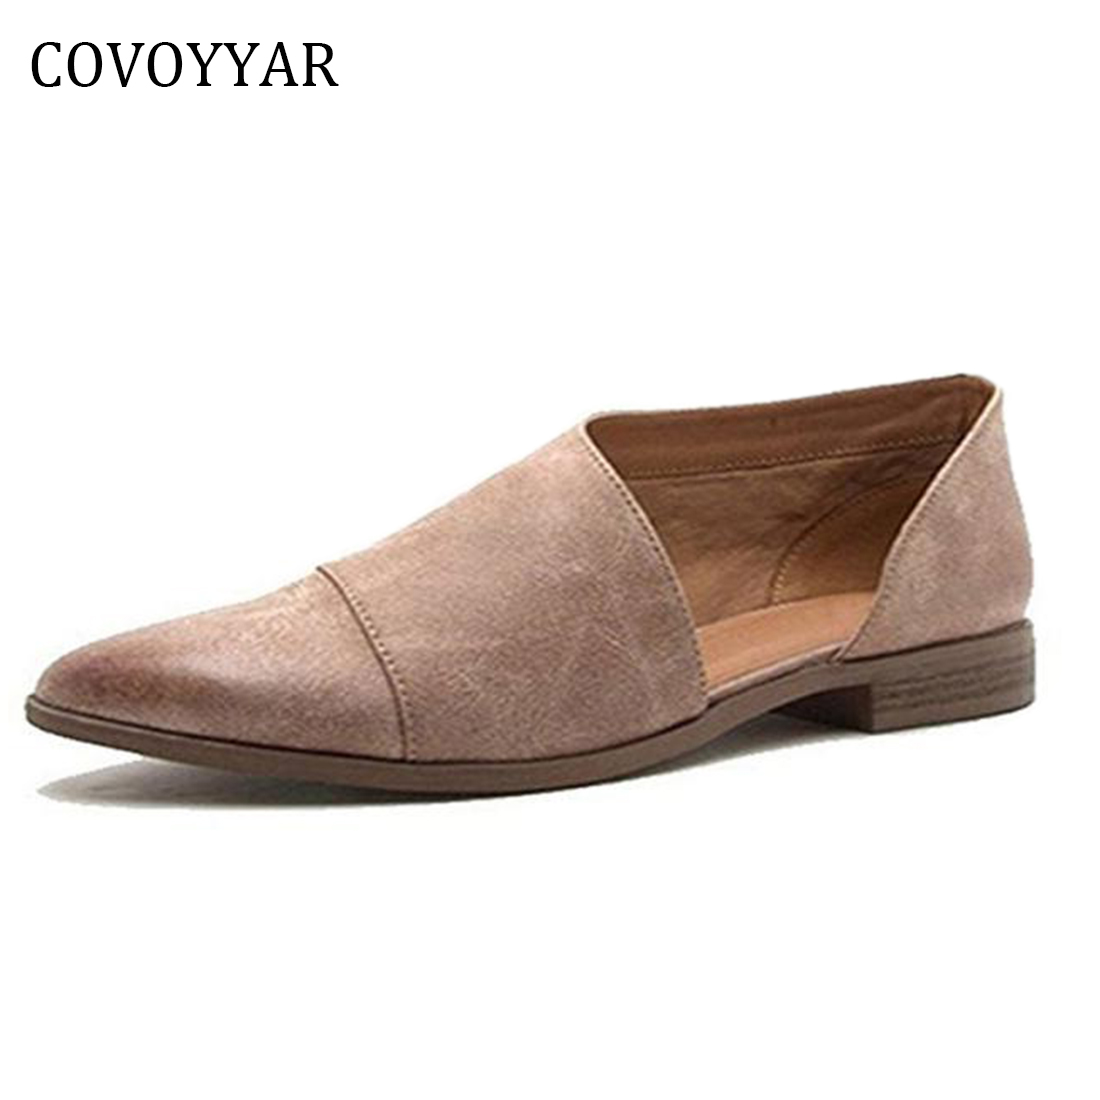 COVOYYAR 2018 Vintage Women Shoes Spring Autumn Pointed Toe D'Orsay Flats Shallow Top Lady Oxfords Loafers Plus Size 43 WFS323 covoyyar 2018 fringe women sandals vintage tassel lady flip flops summer back zip flat women shoes plus size 40 wss765